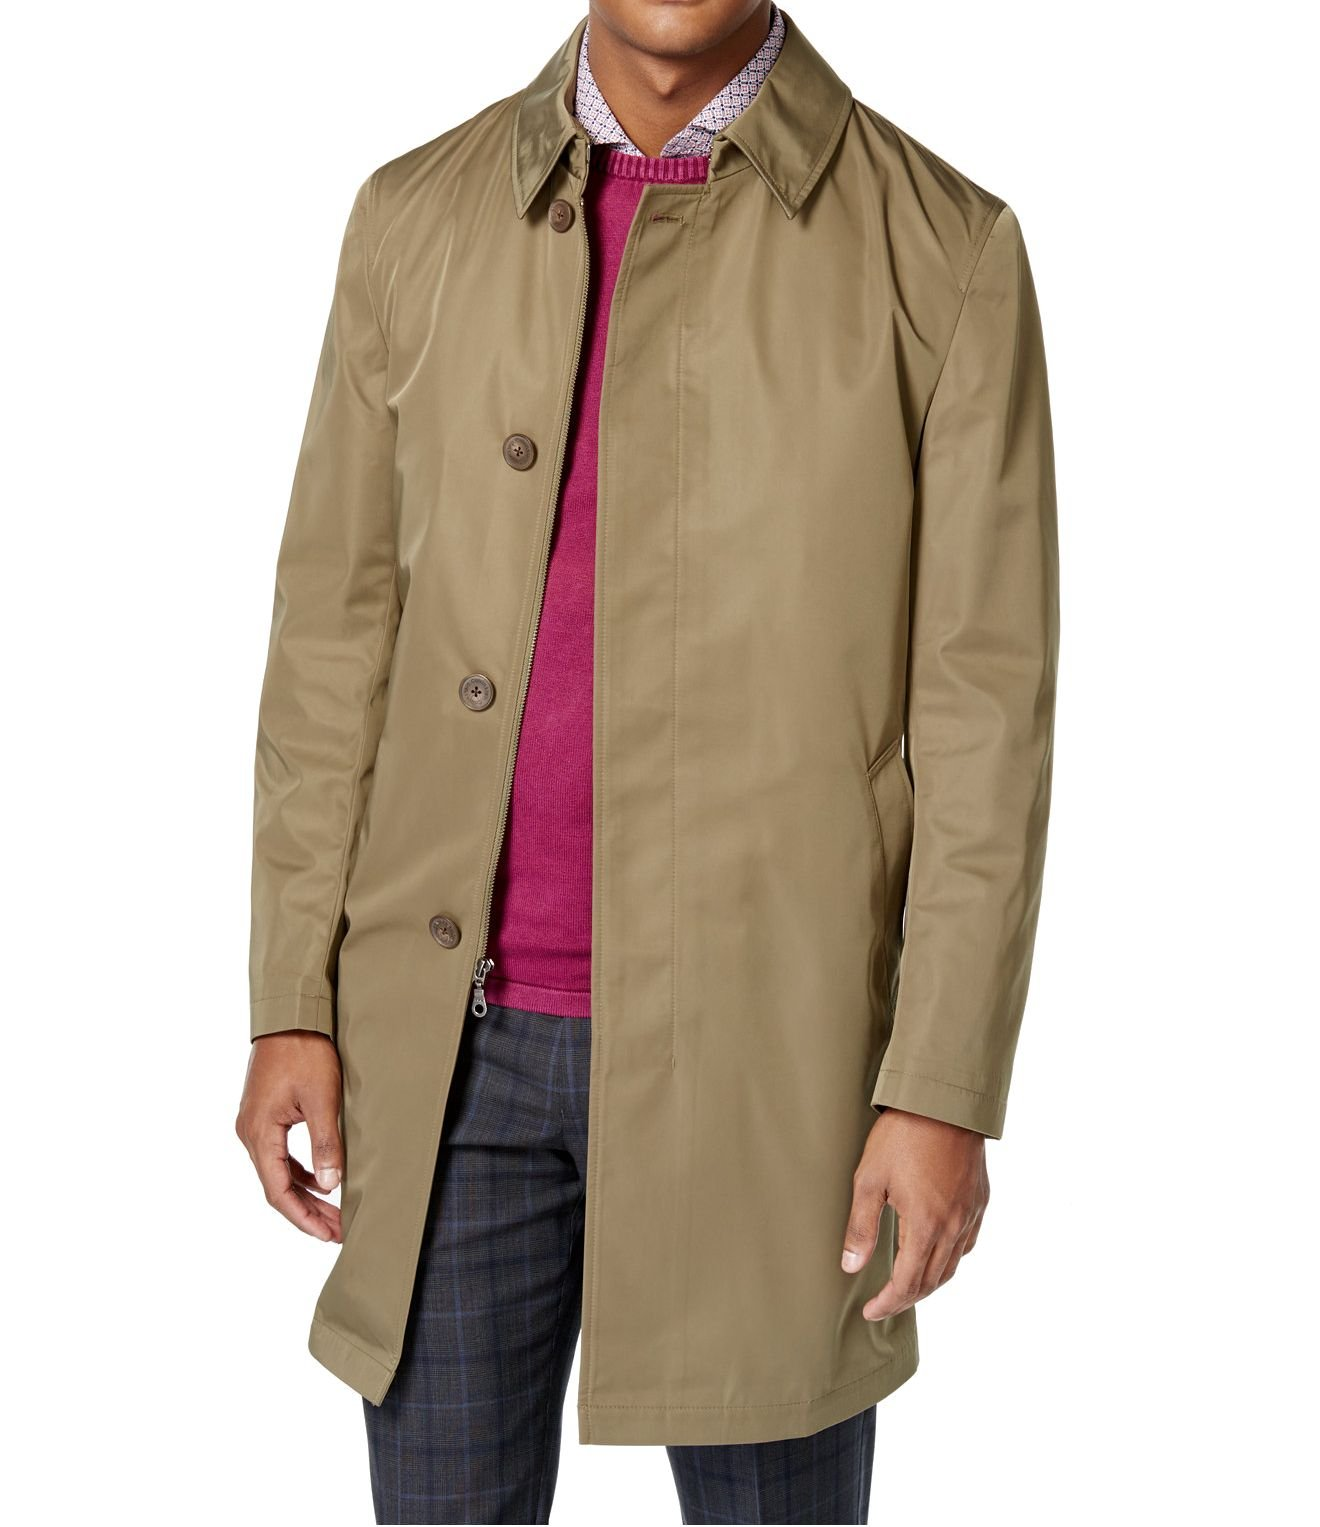 Calvin Klein Extreme Slim Olive Solid Zip & Button New Men's Melford Rain Jacket (40 Regular)